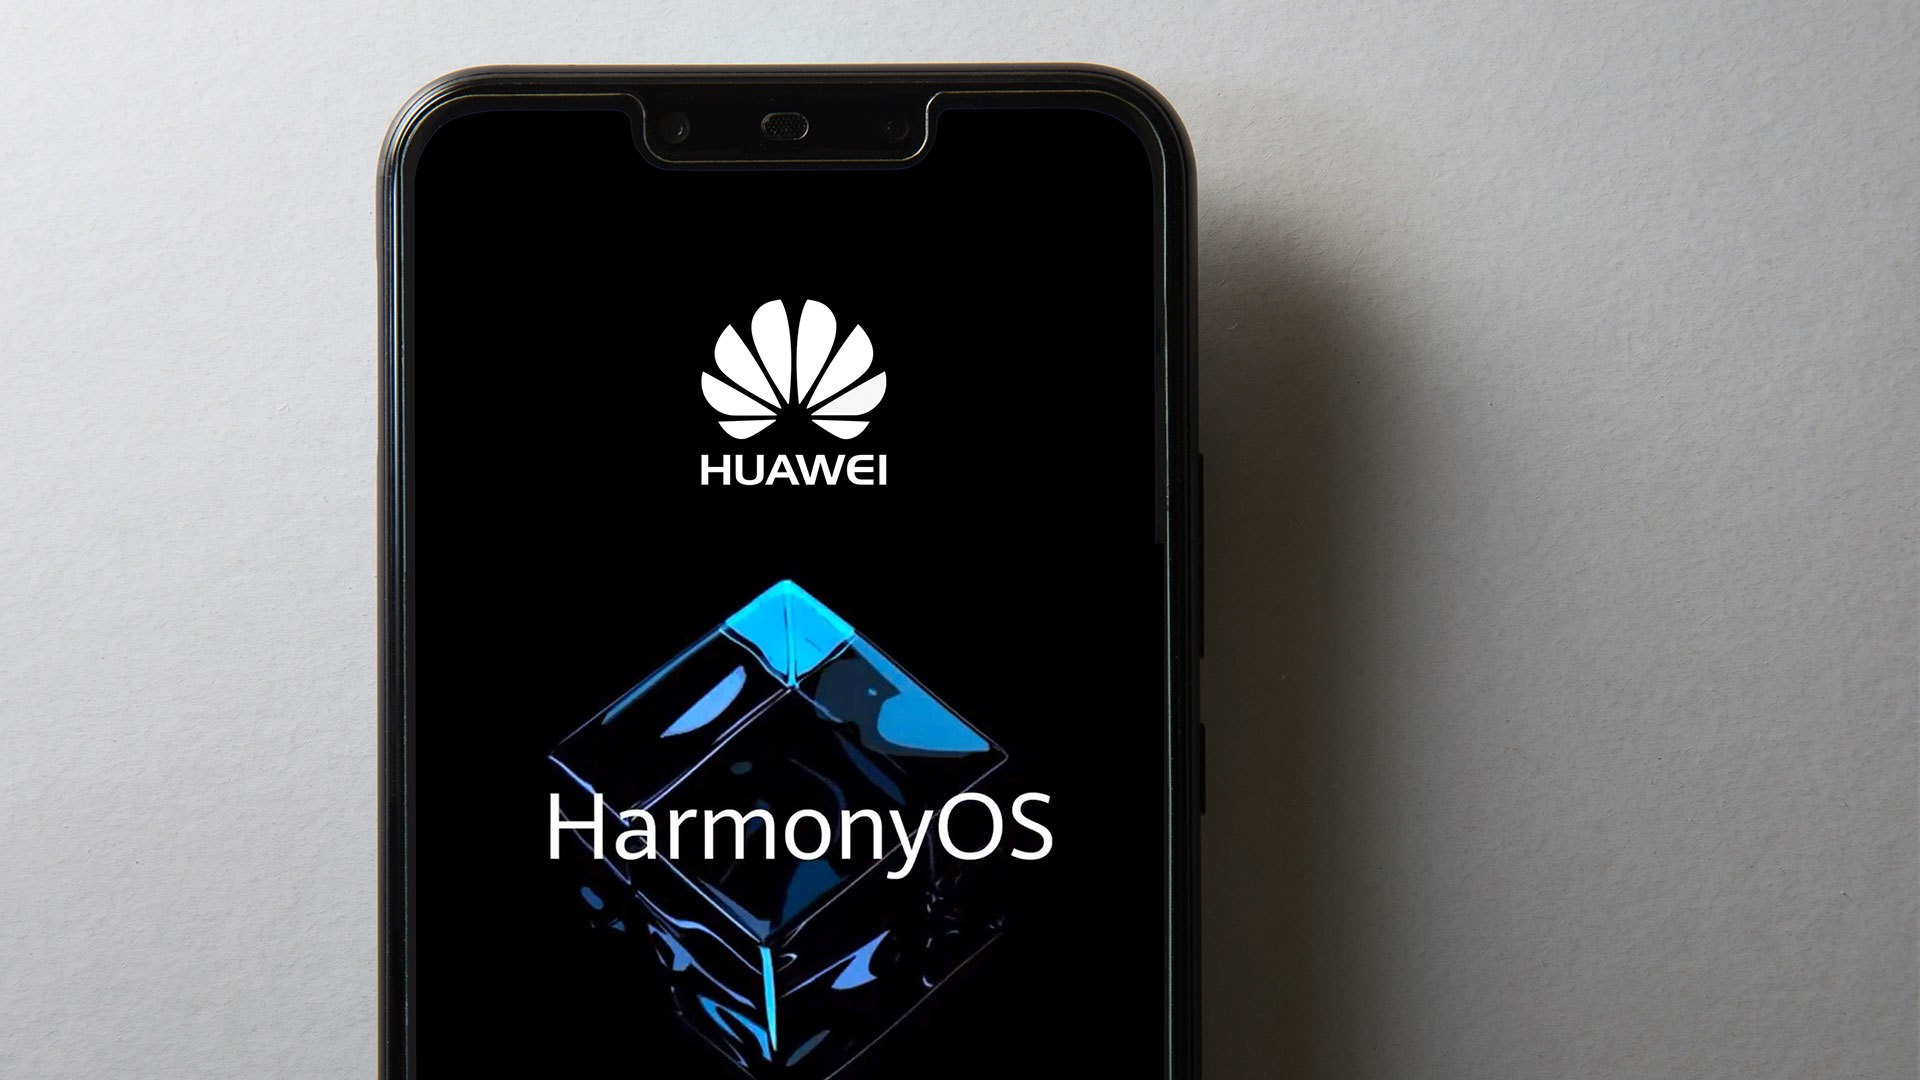 Huawei promet que HarmonyOS différera d'Android dans sa version finale - Frandroid